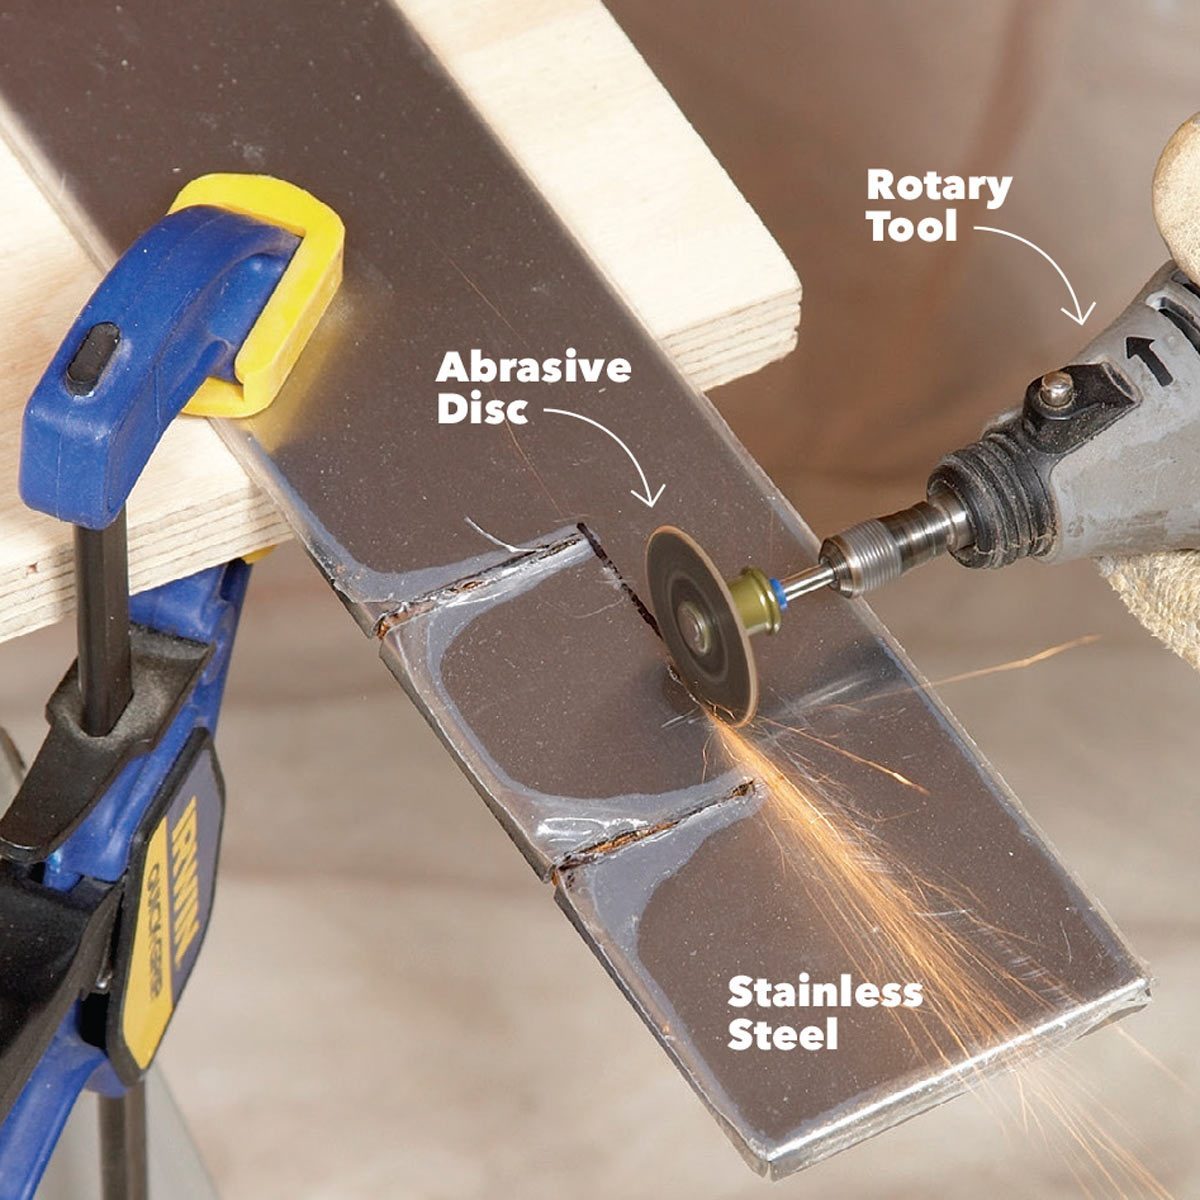 cut stainless steel with a grinding disk